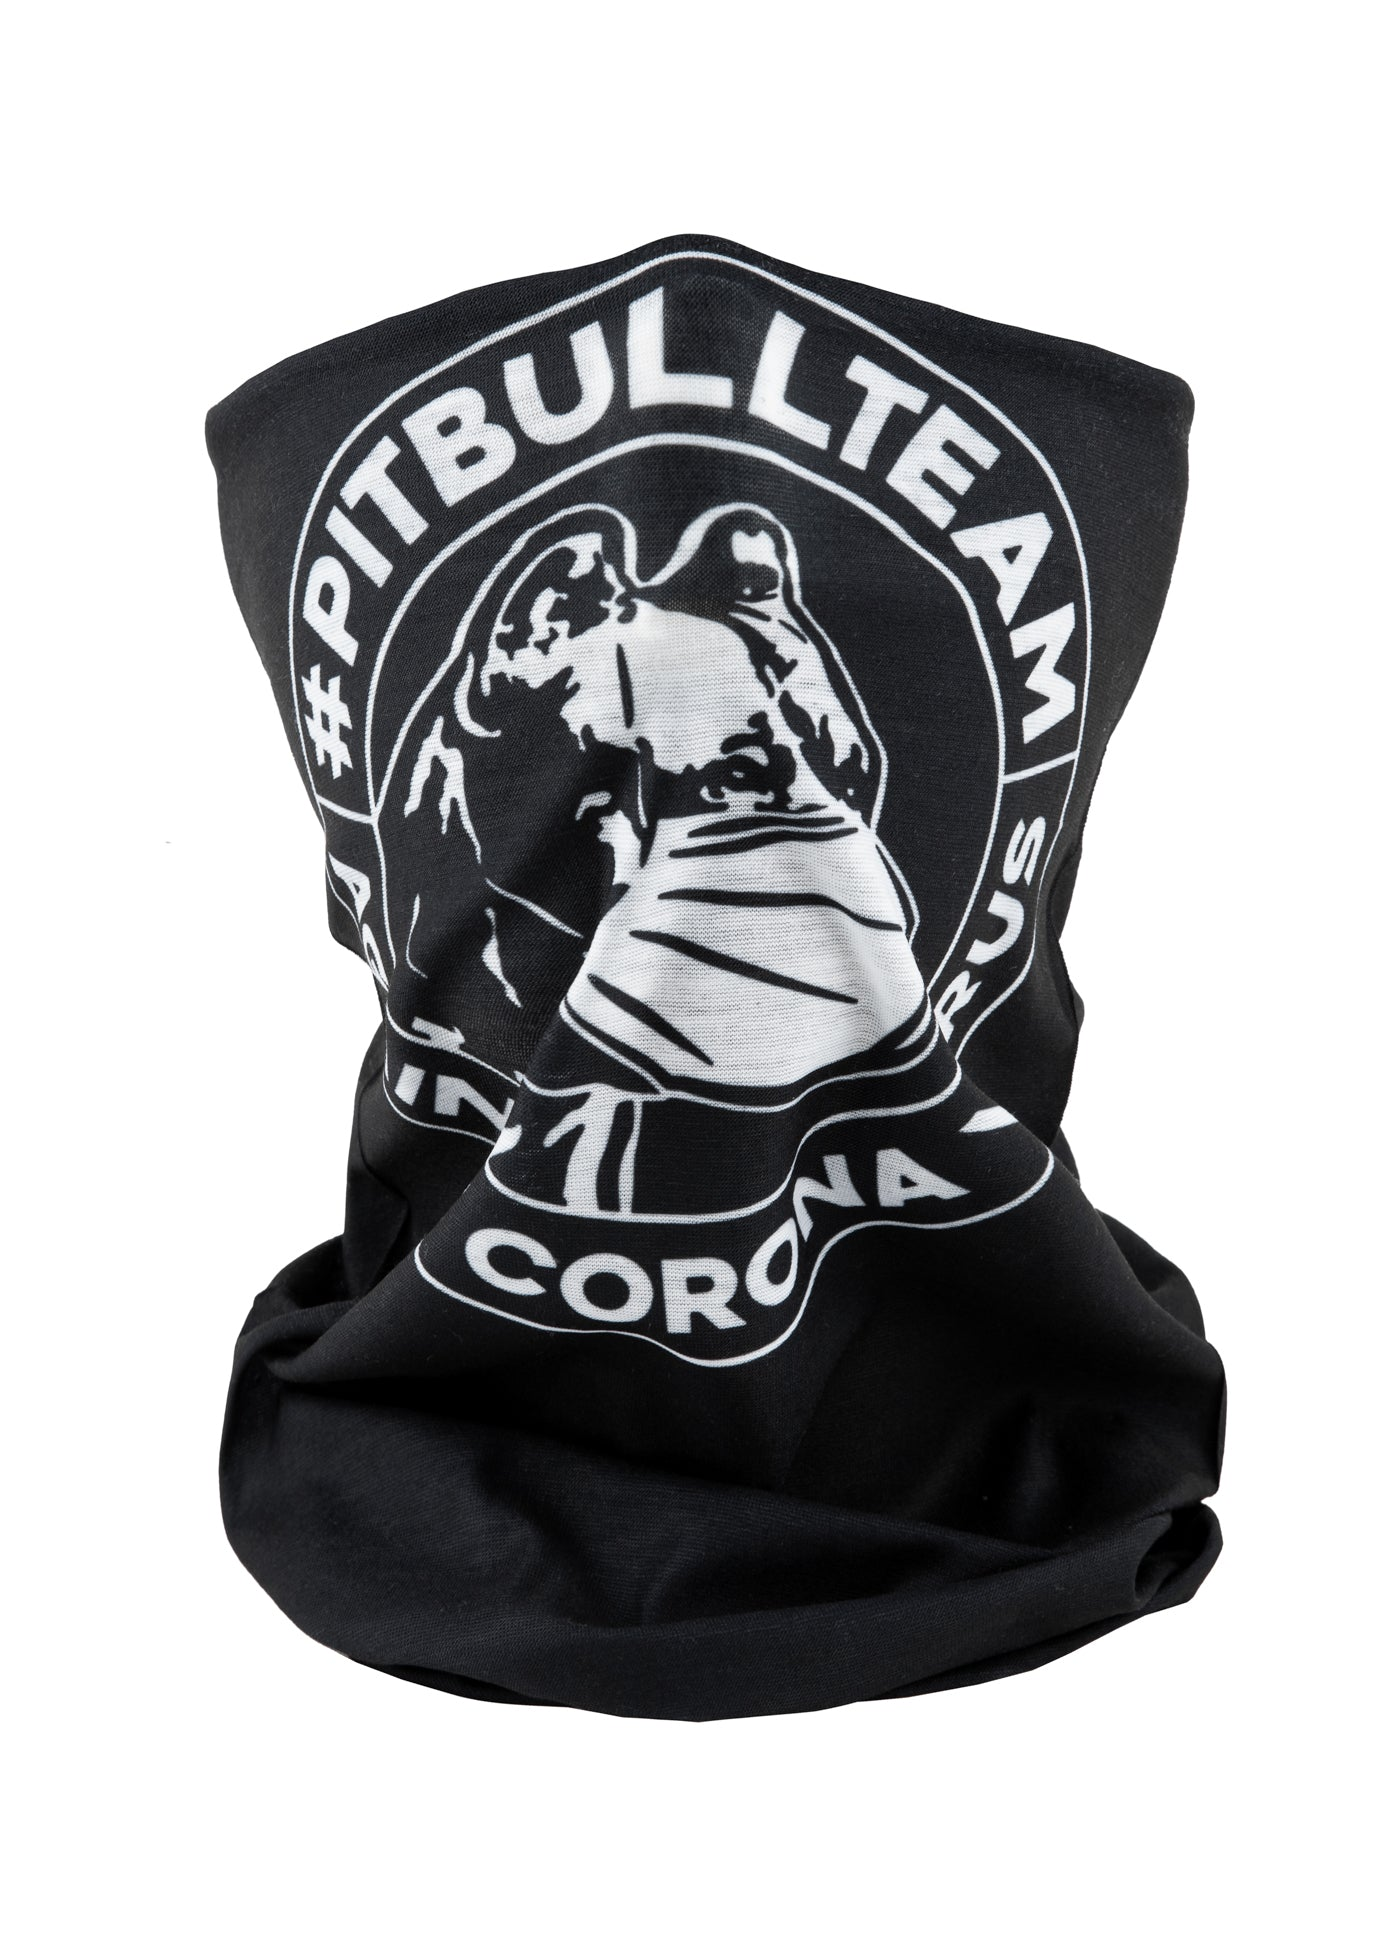 BANDANA #PITBULLTEAM BLACK - pitbullwestcoast